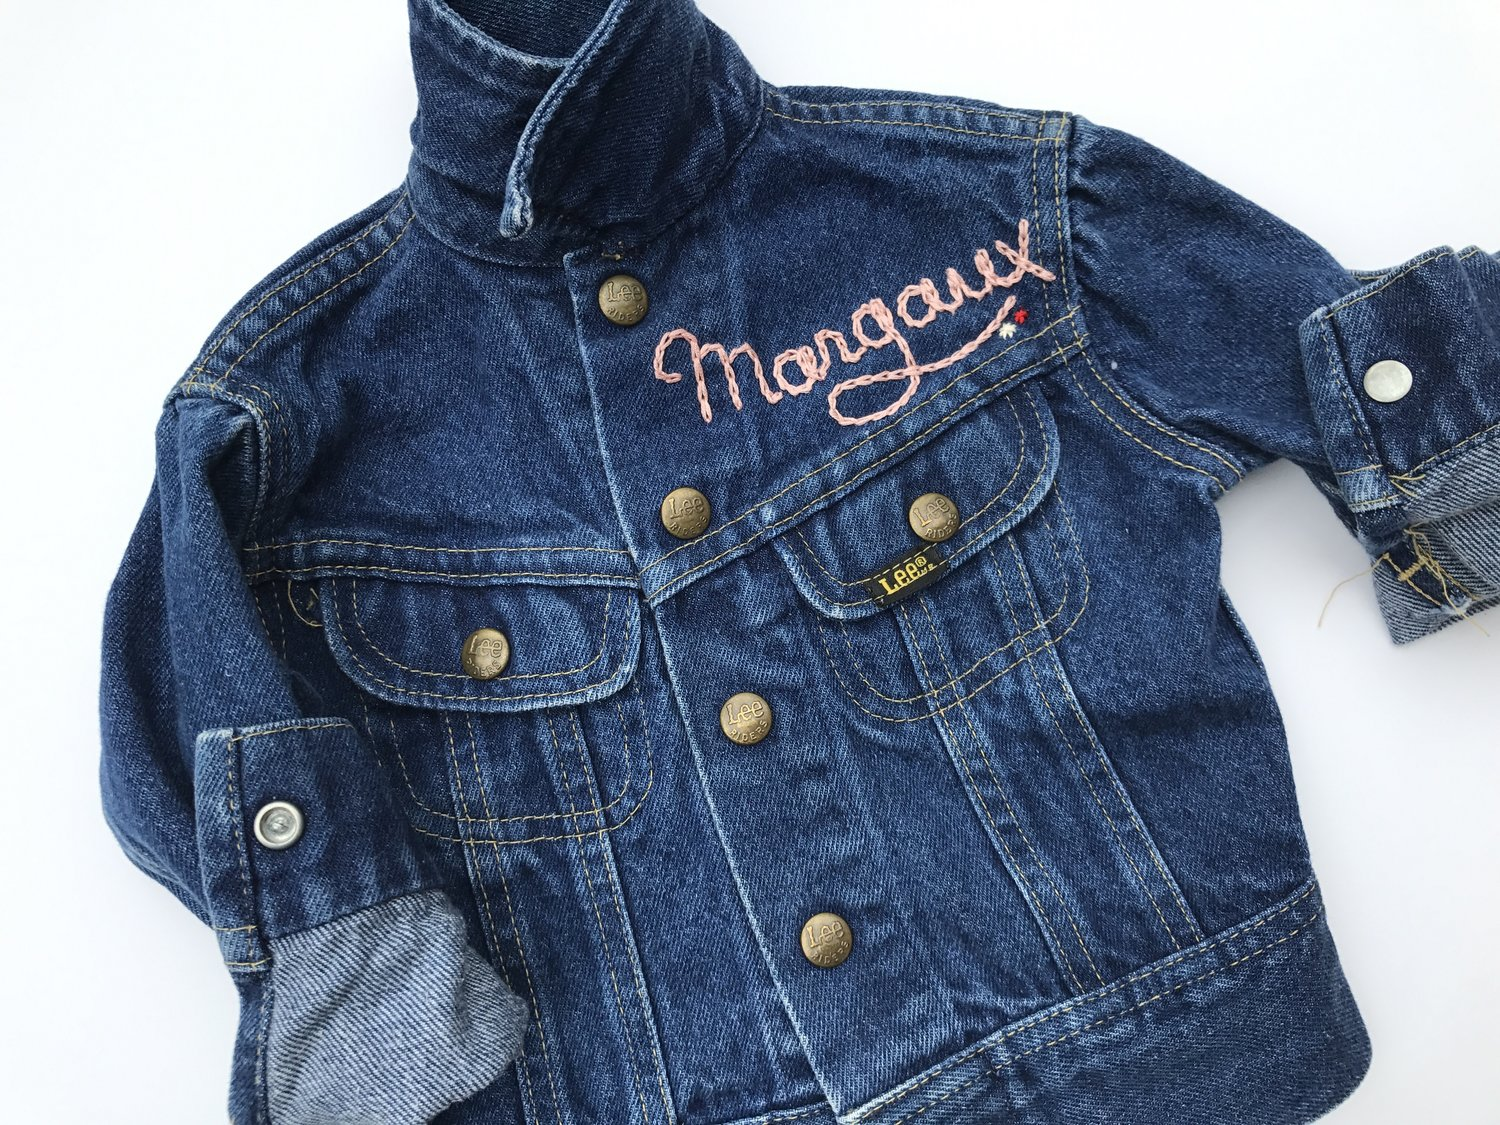 c04befe653 CUSTOM EMBROIDERED DENIM JACKET — SiD NYC